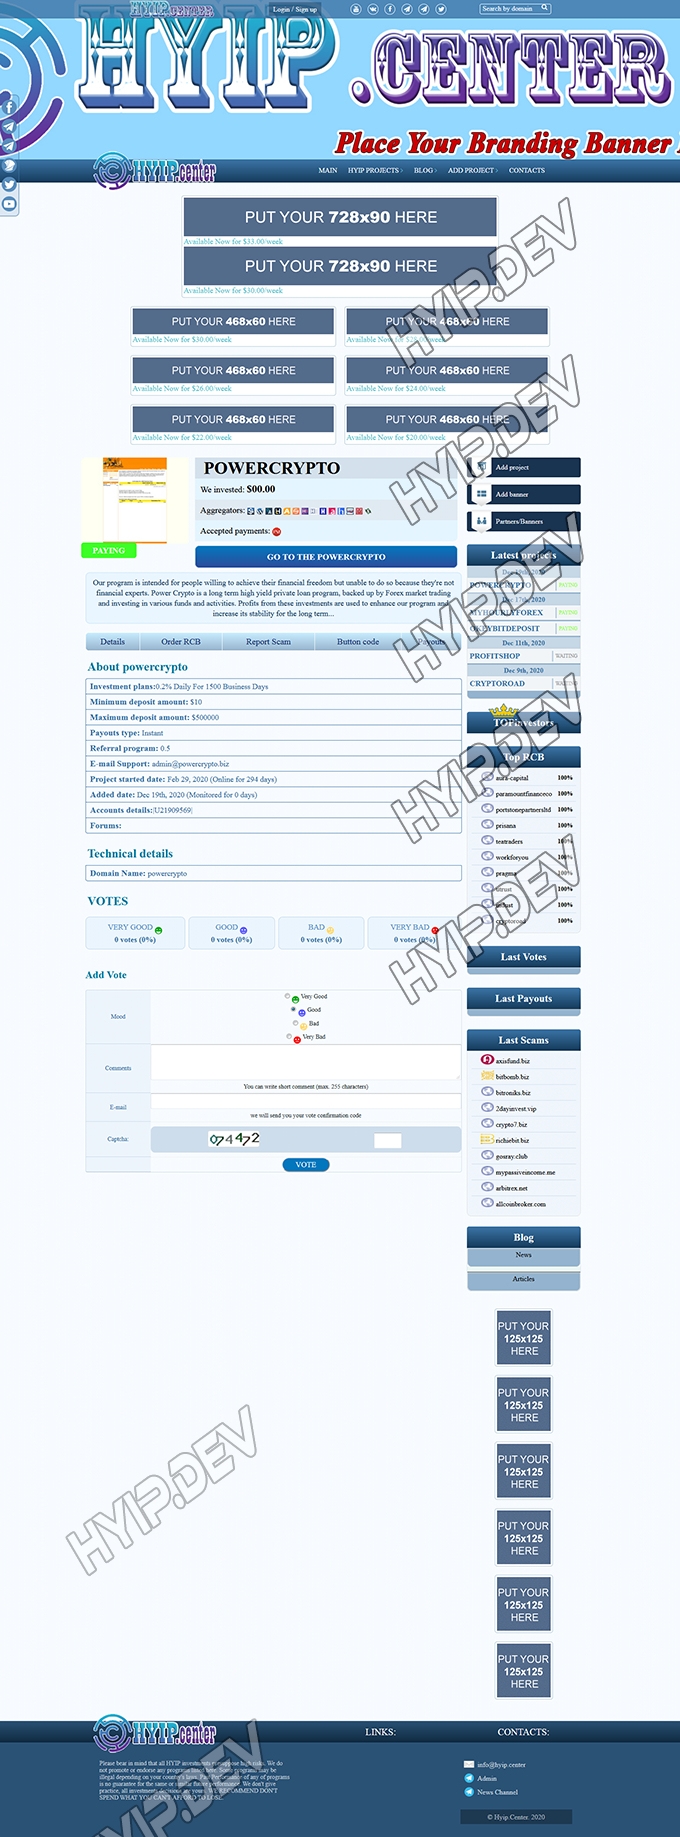 goldcoders lister template no 006 details